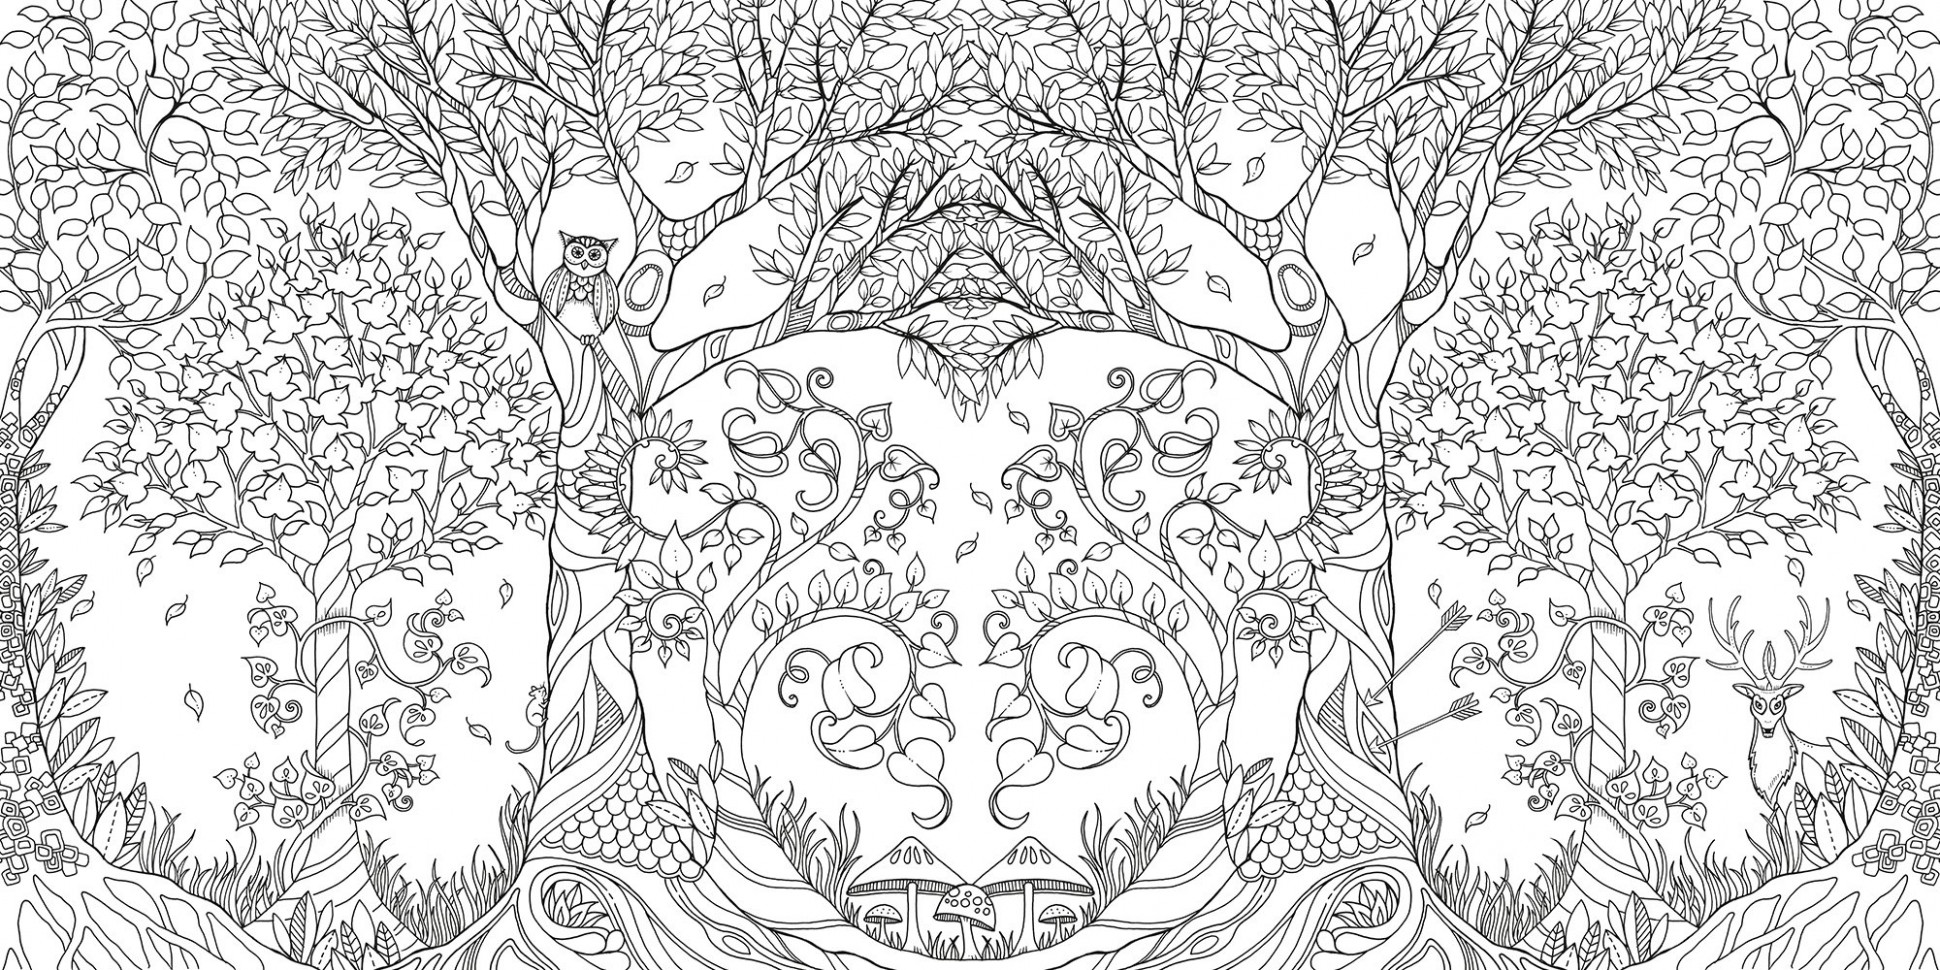 Amazon.com: Enchanted Forest: An Inky Quest